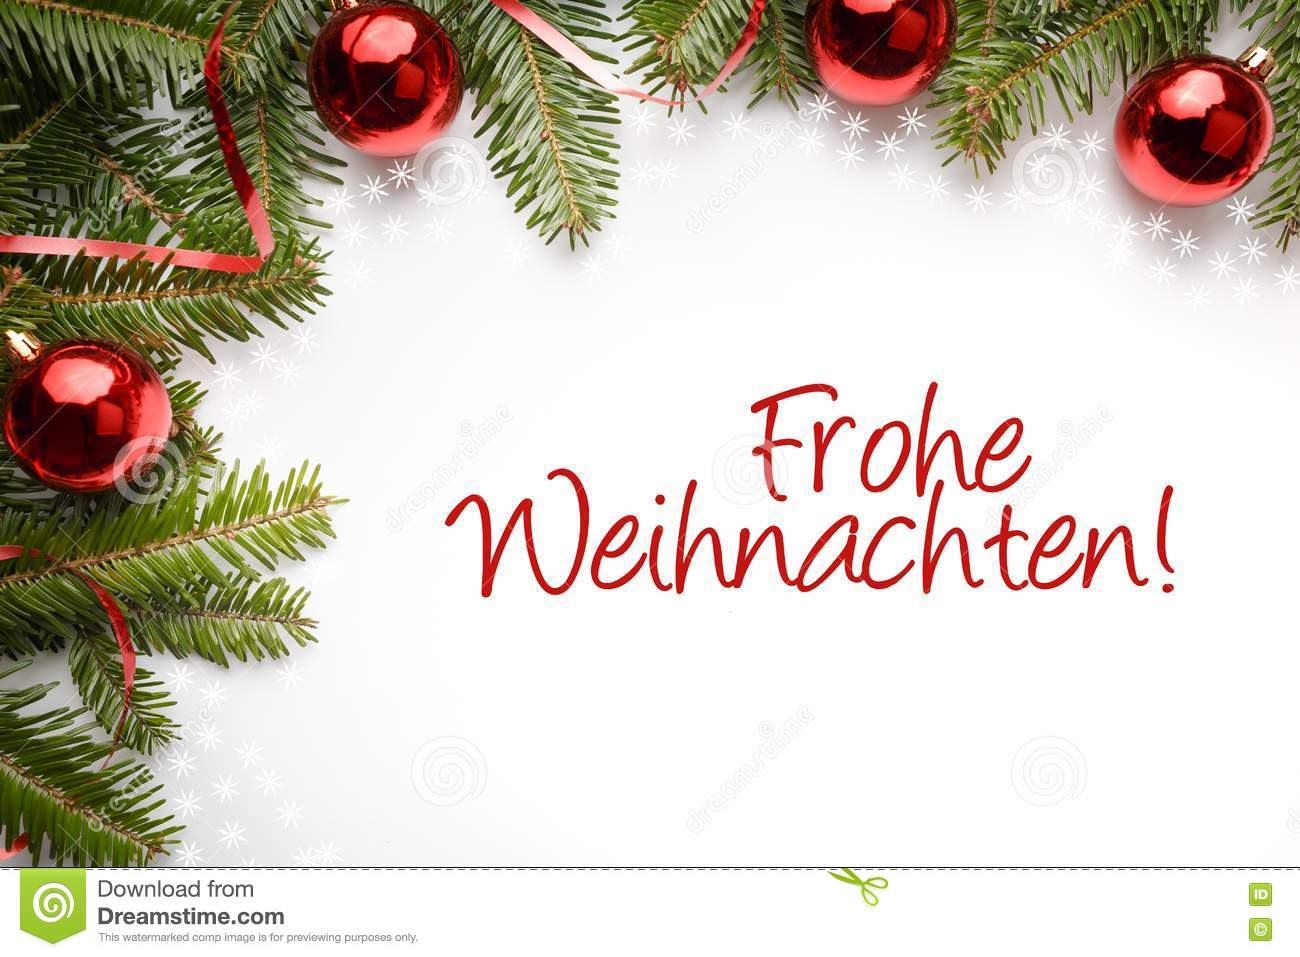 Frohe Weihnachten Christmas Decorations With The Christmas Greeting In German Frohe